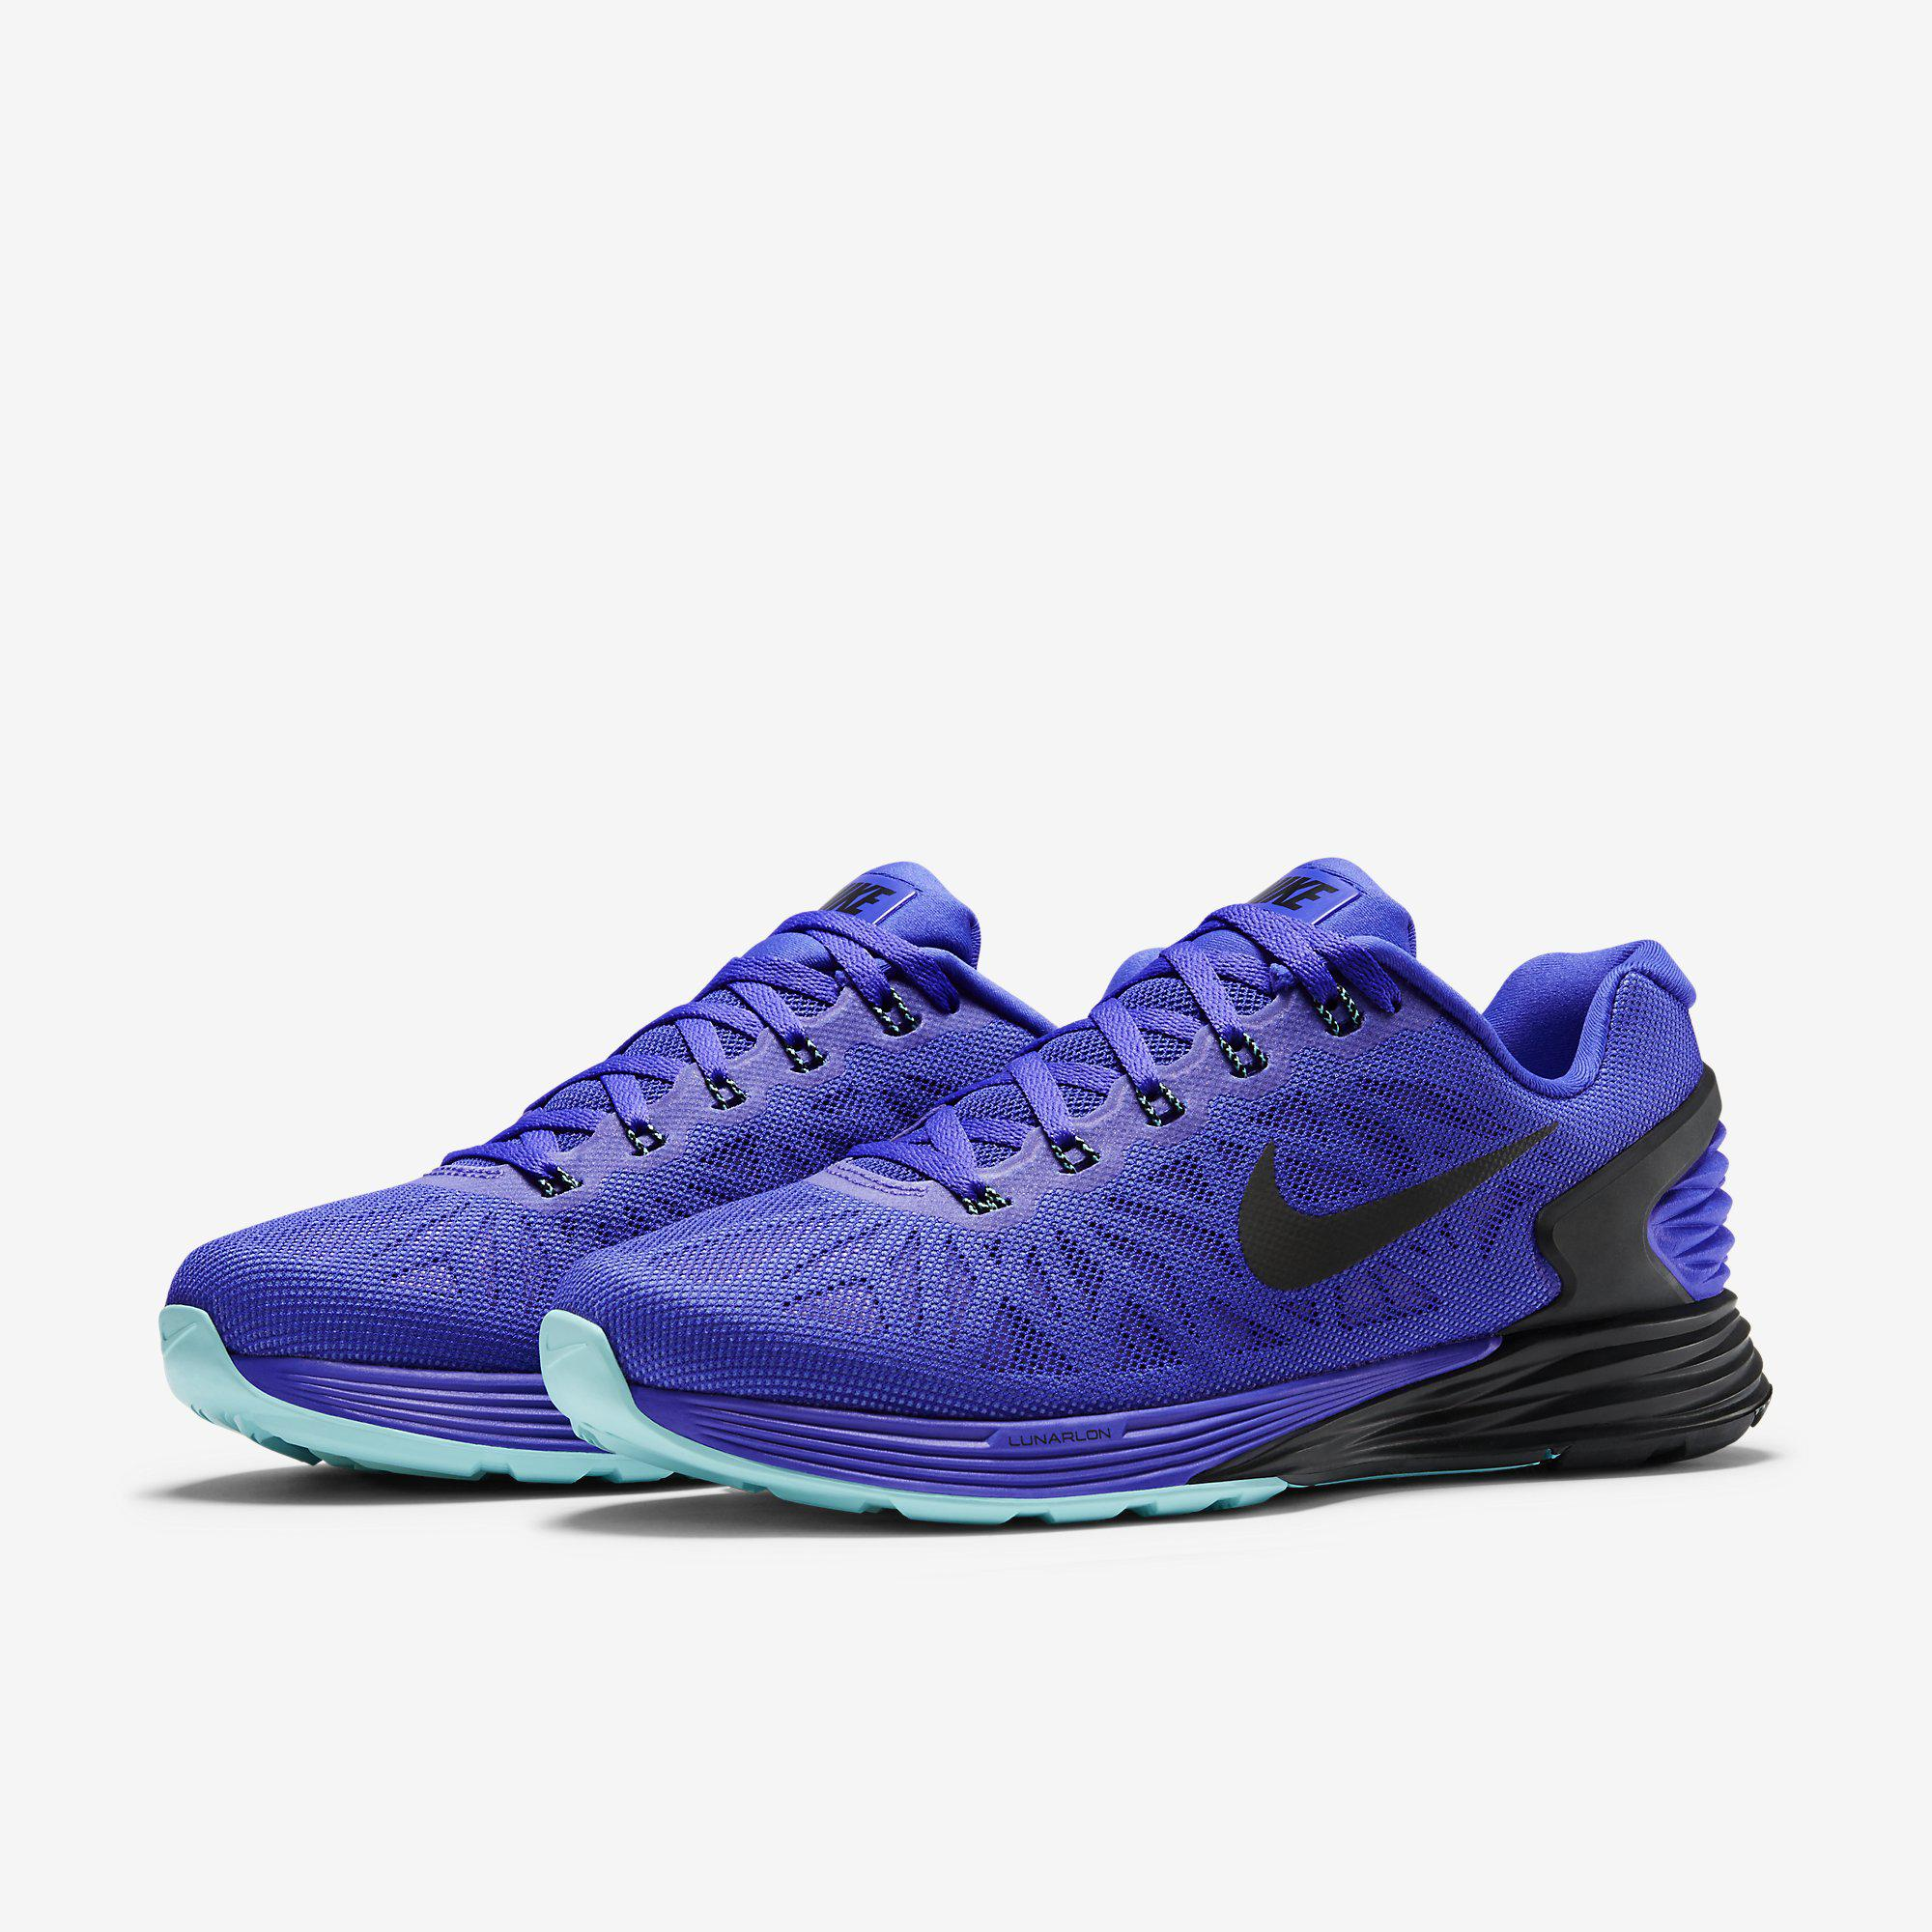 online store f1717 5ae2b ... germany nike womens lunarglide 6 running shoes persian violet 7aafc  113b4